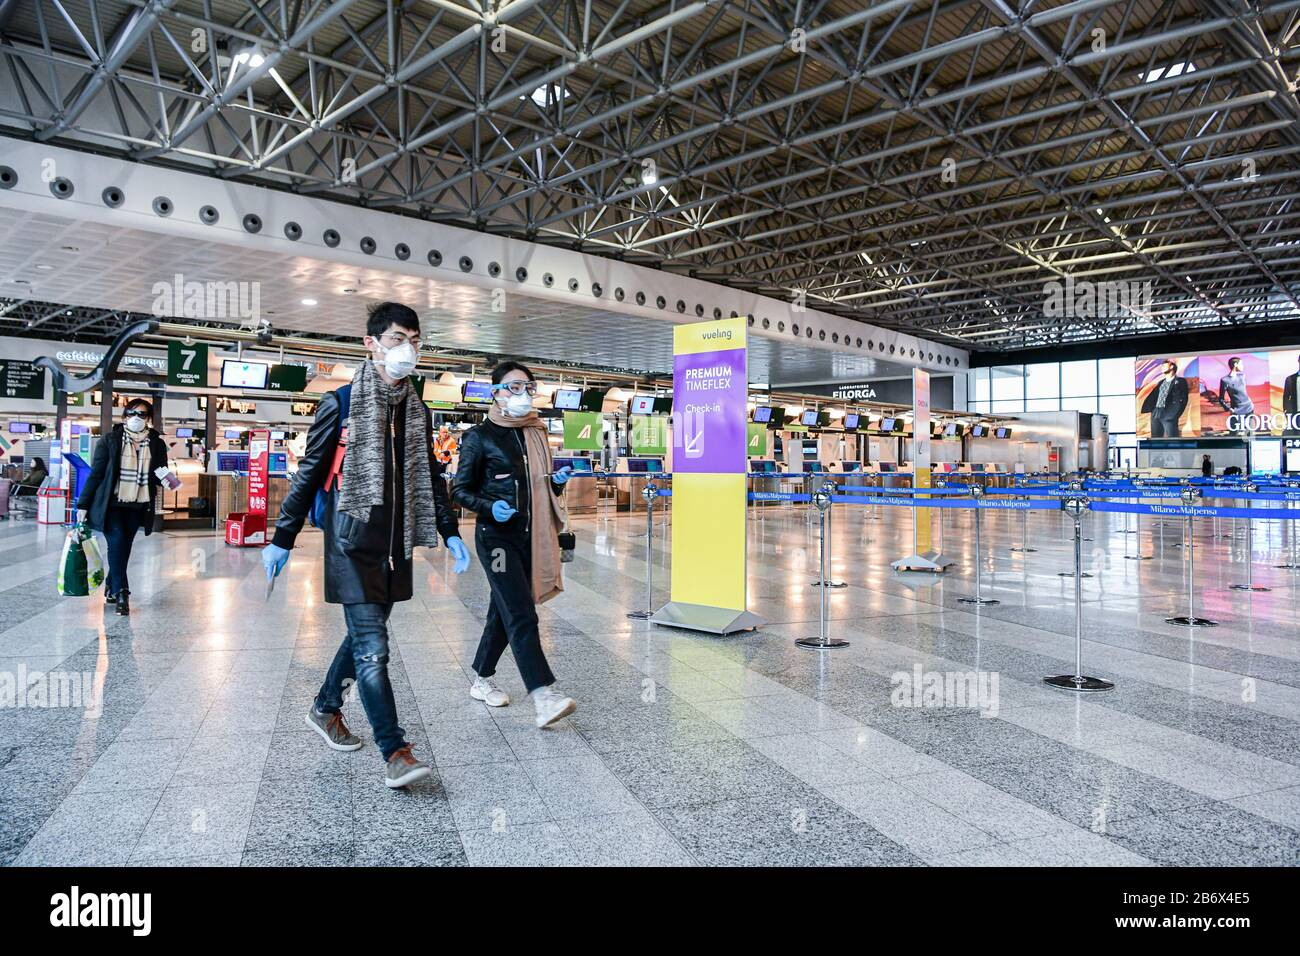 Milan Malpensa Airport High Resolution Stock Photography And Images Alamy